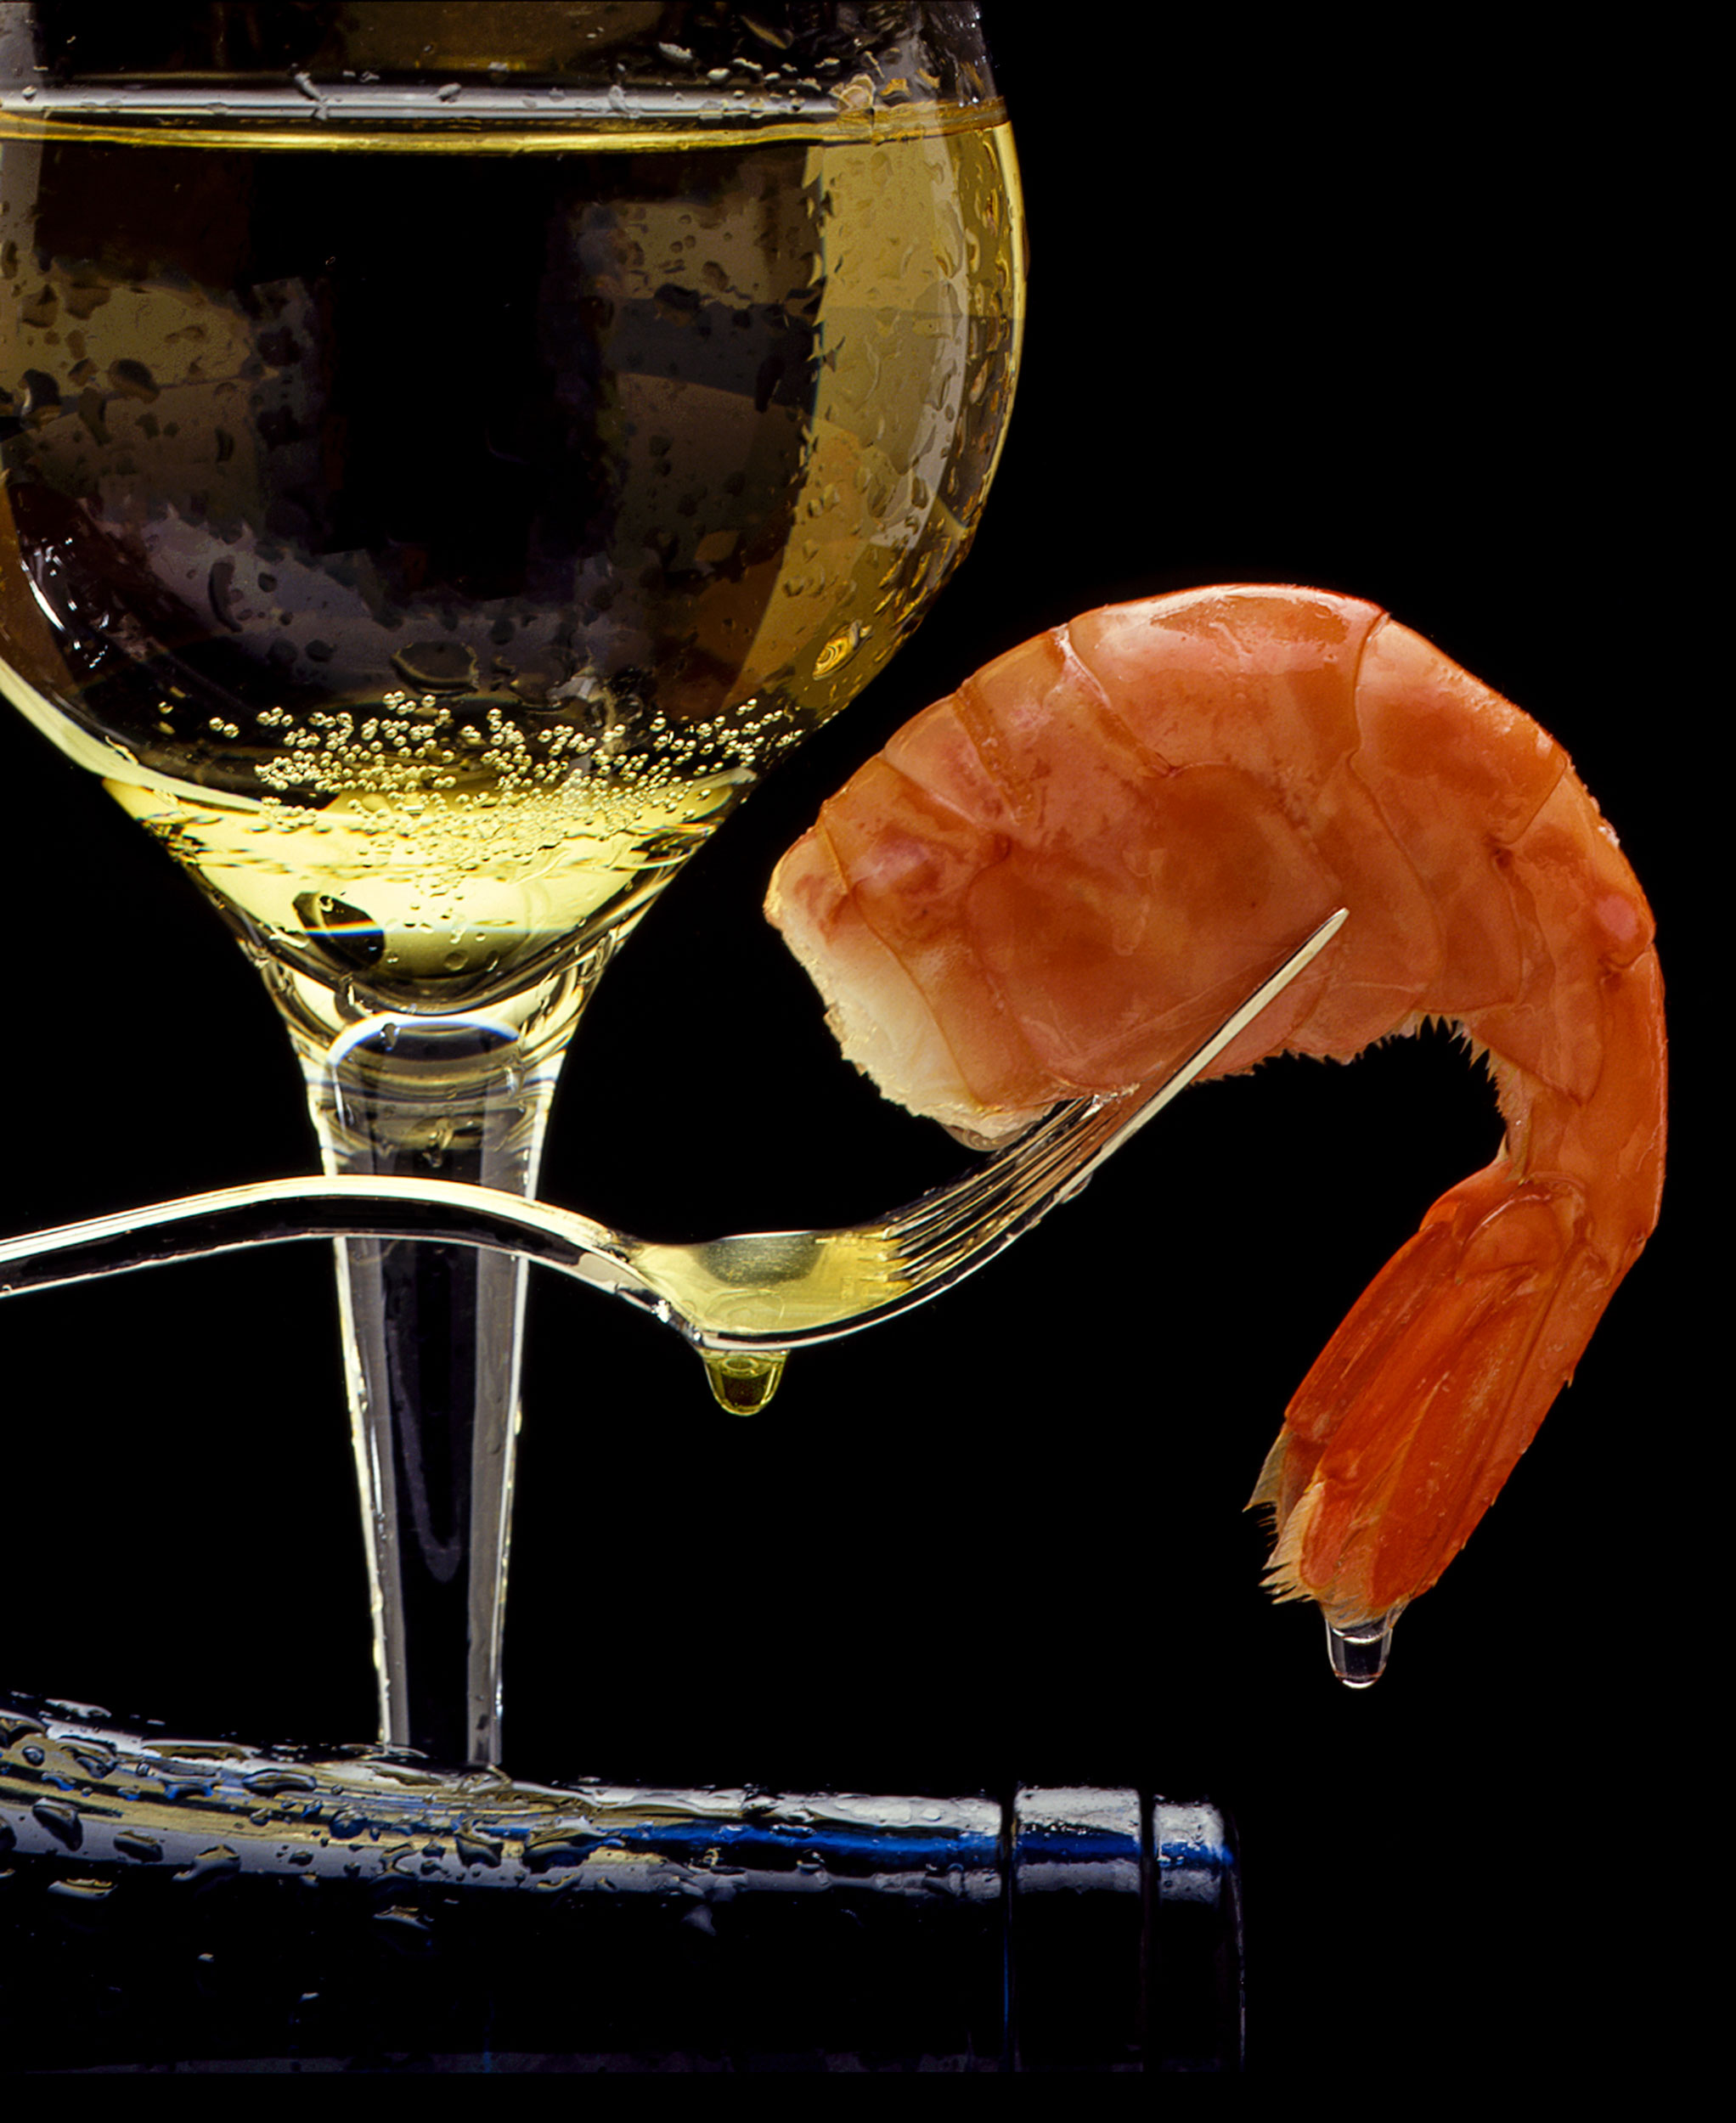 16 B-0550WineGlassShrimp-small.jpg